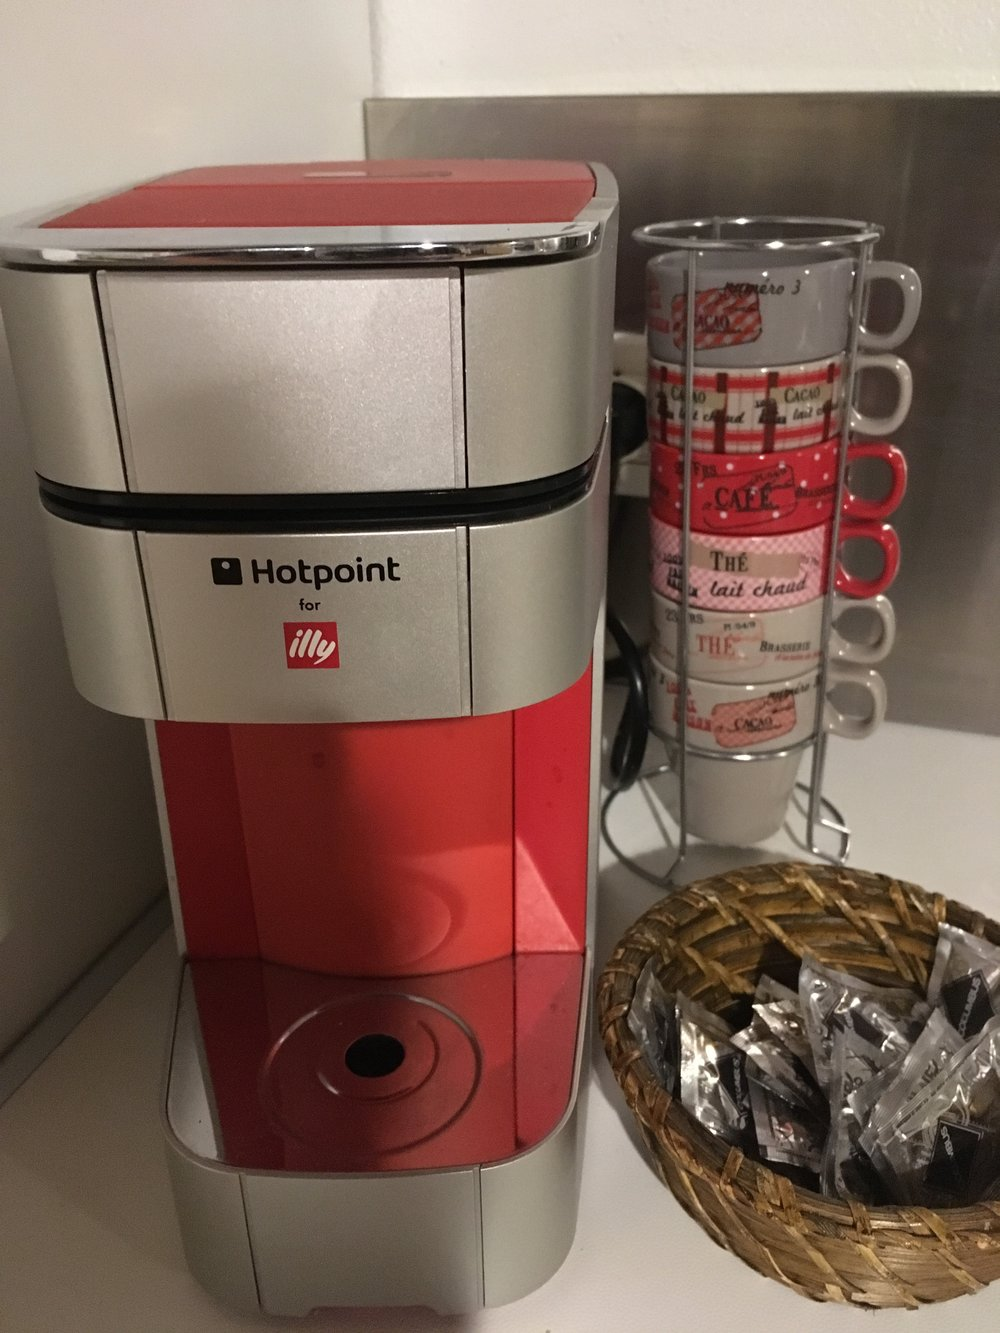 One of several options for brewing coffee in the apartment. There were also two Mokas and an American-style electric drip coffeemaker.